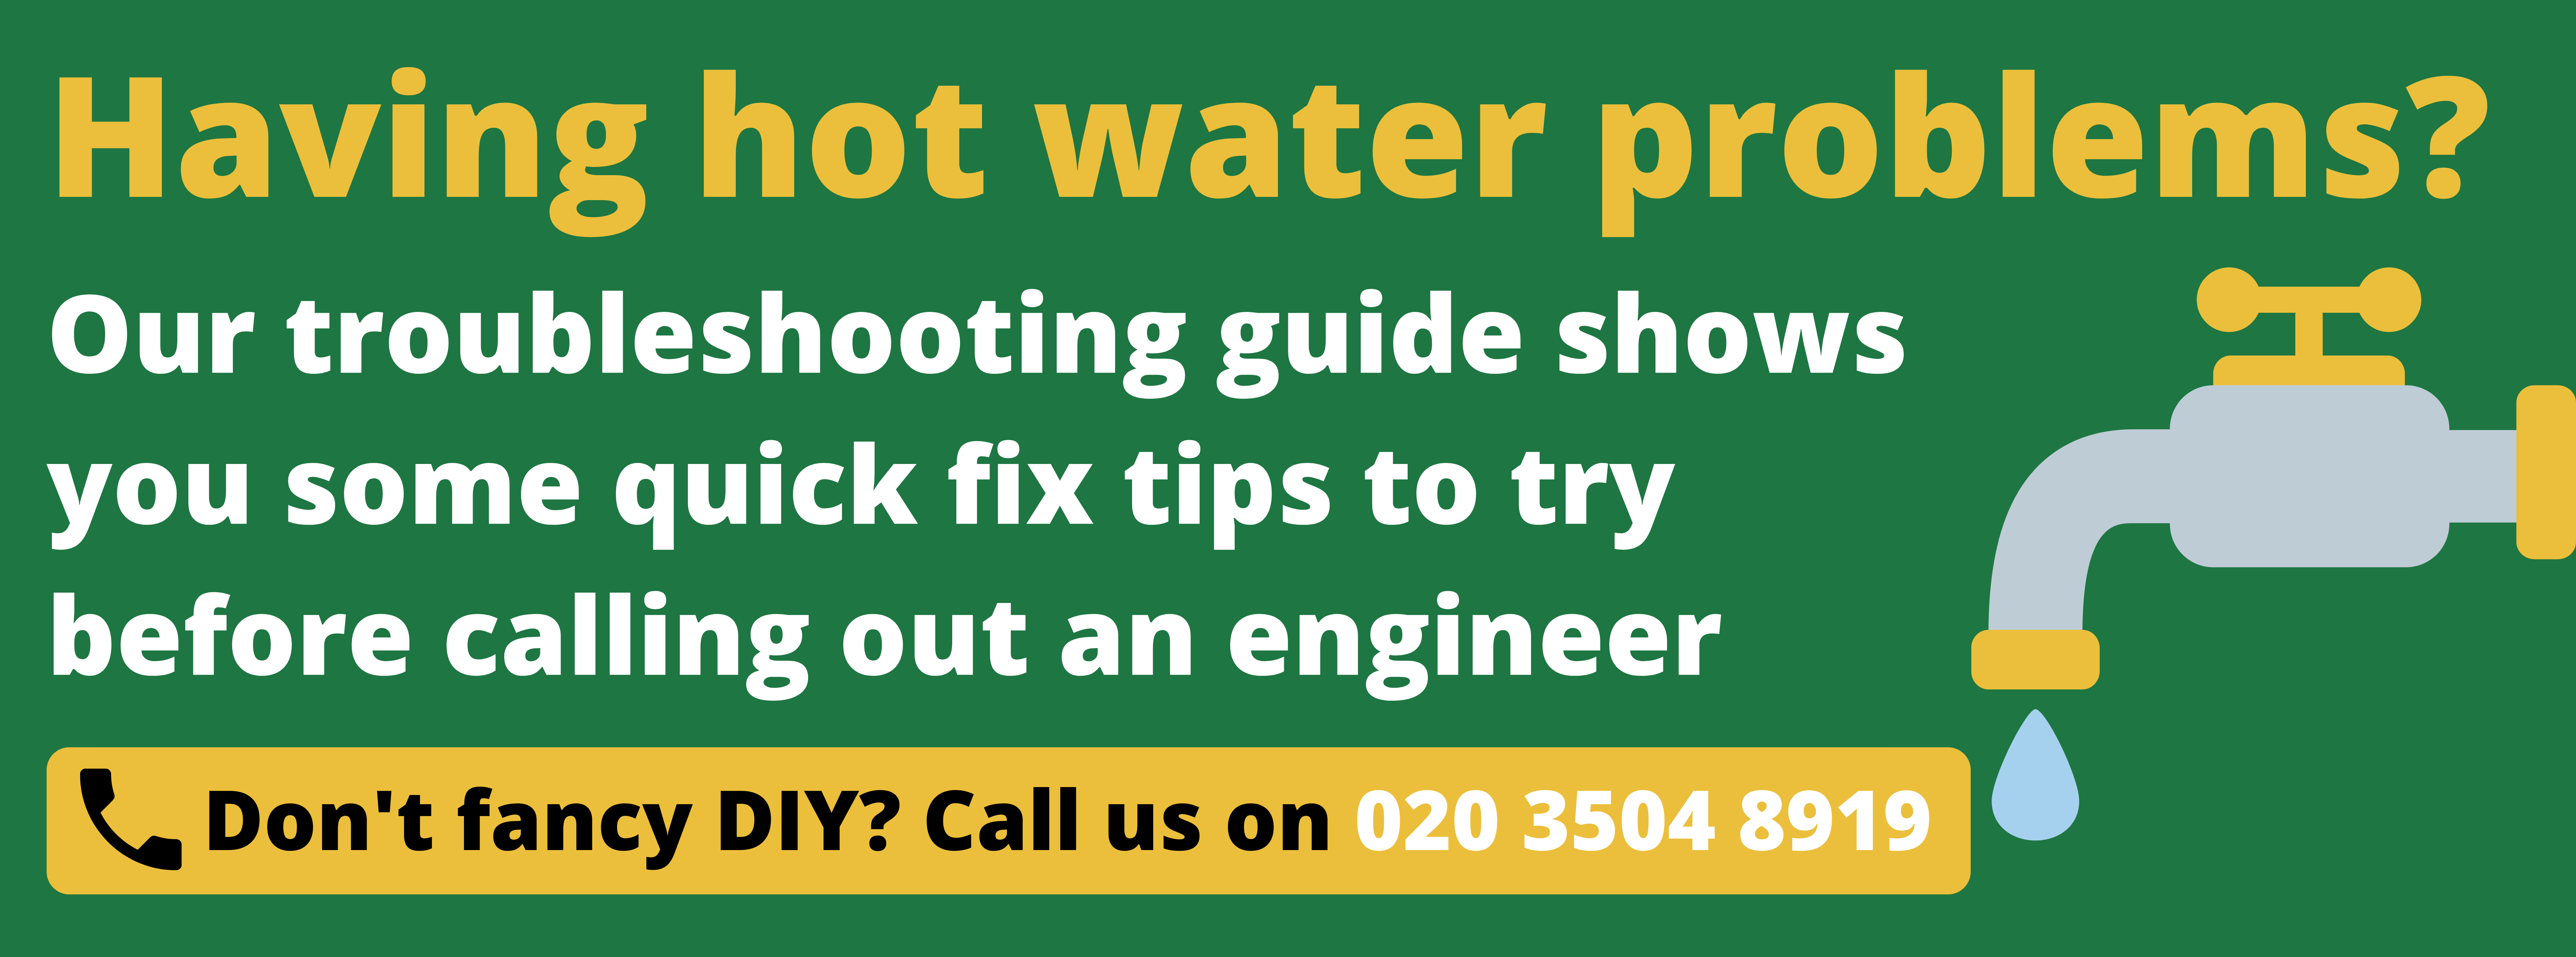 Having hot water troubles? Our troubleshooting guide shows you some quick fix tips